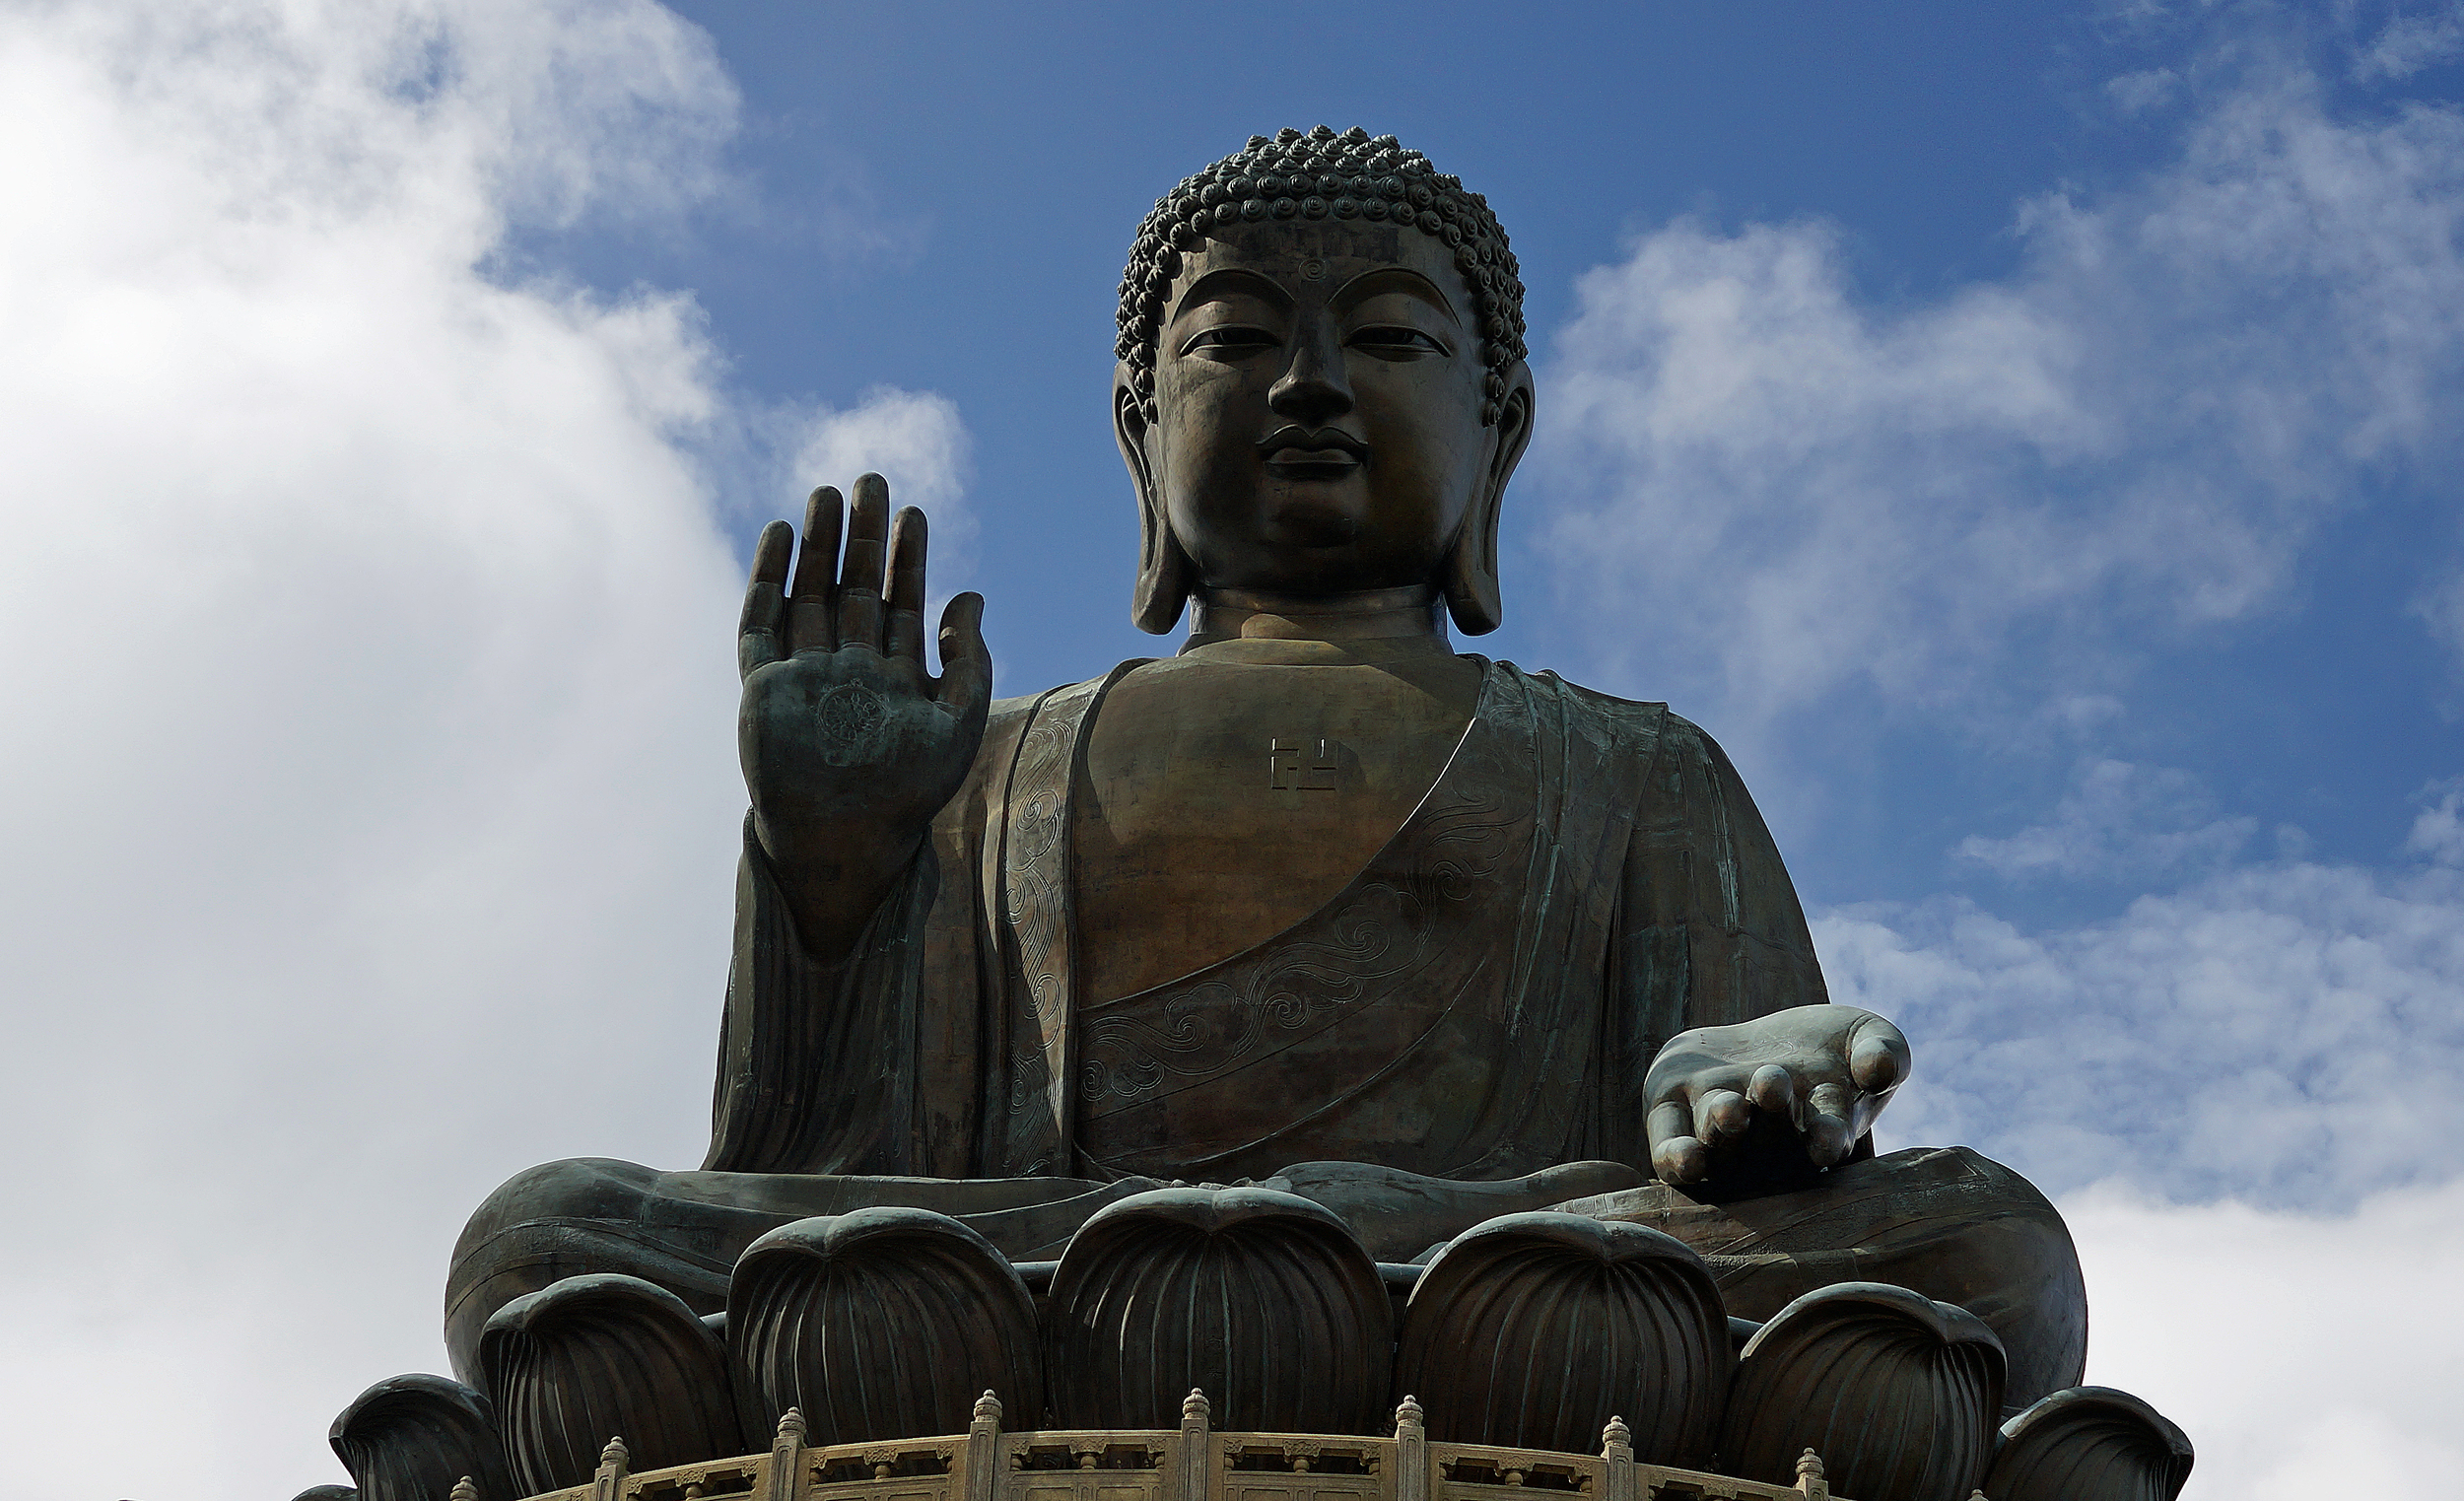 ....and talking of magnificent..... I am a huge fan of the Big Buddha, it makes for a great day out!